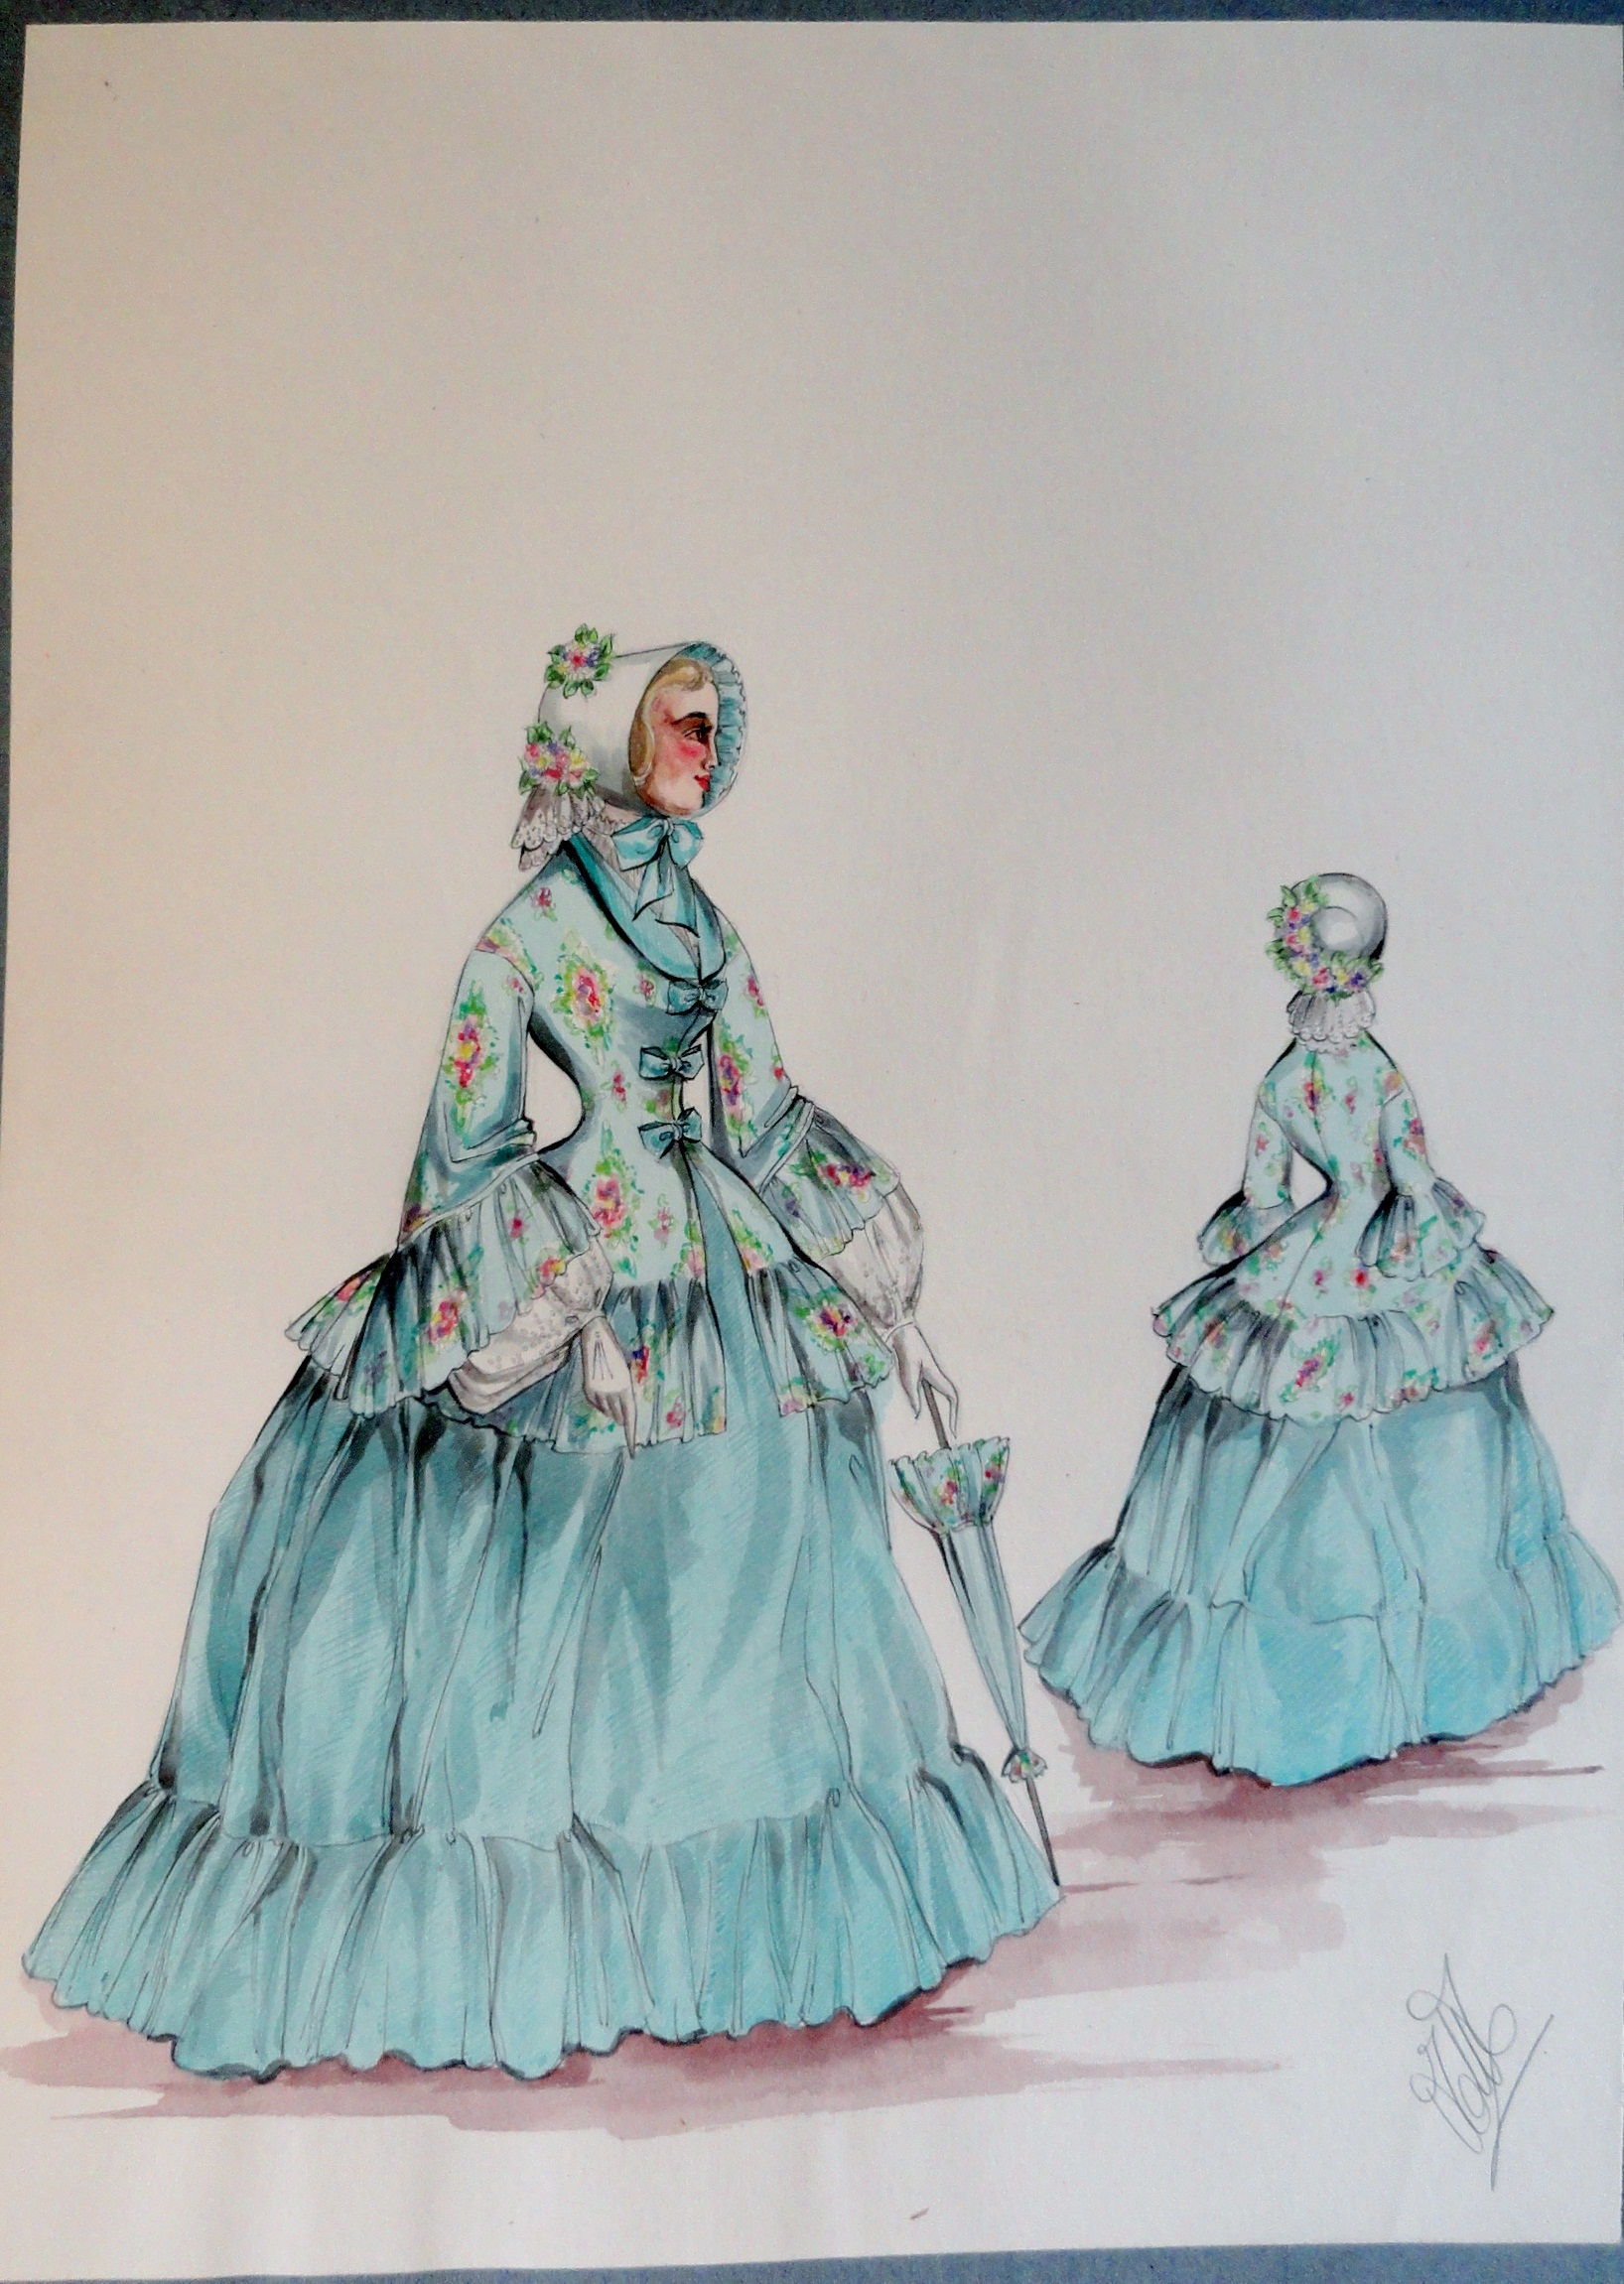 Rachel sister Annette in green gown and bonnet with parasol. Pen and ink and watercolor . From the Rachel Portfolio by Owen Hyde Clark. $300.00